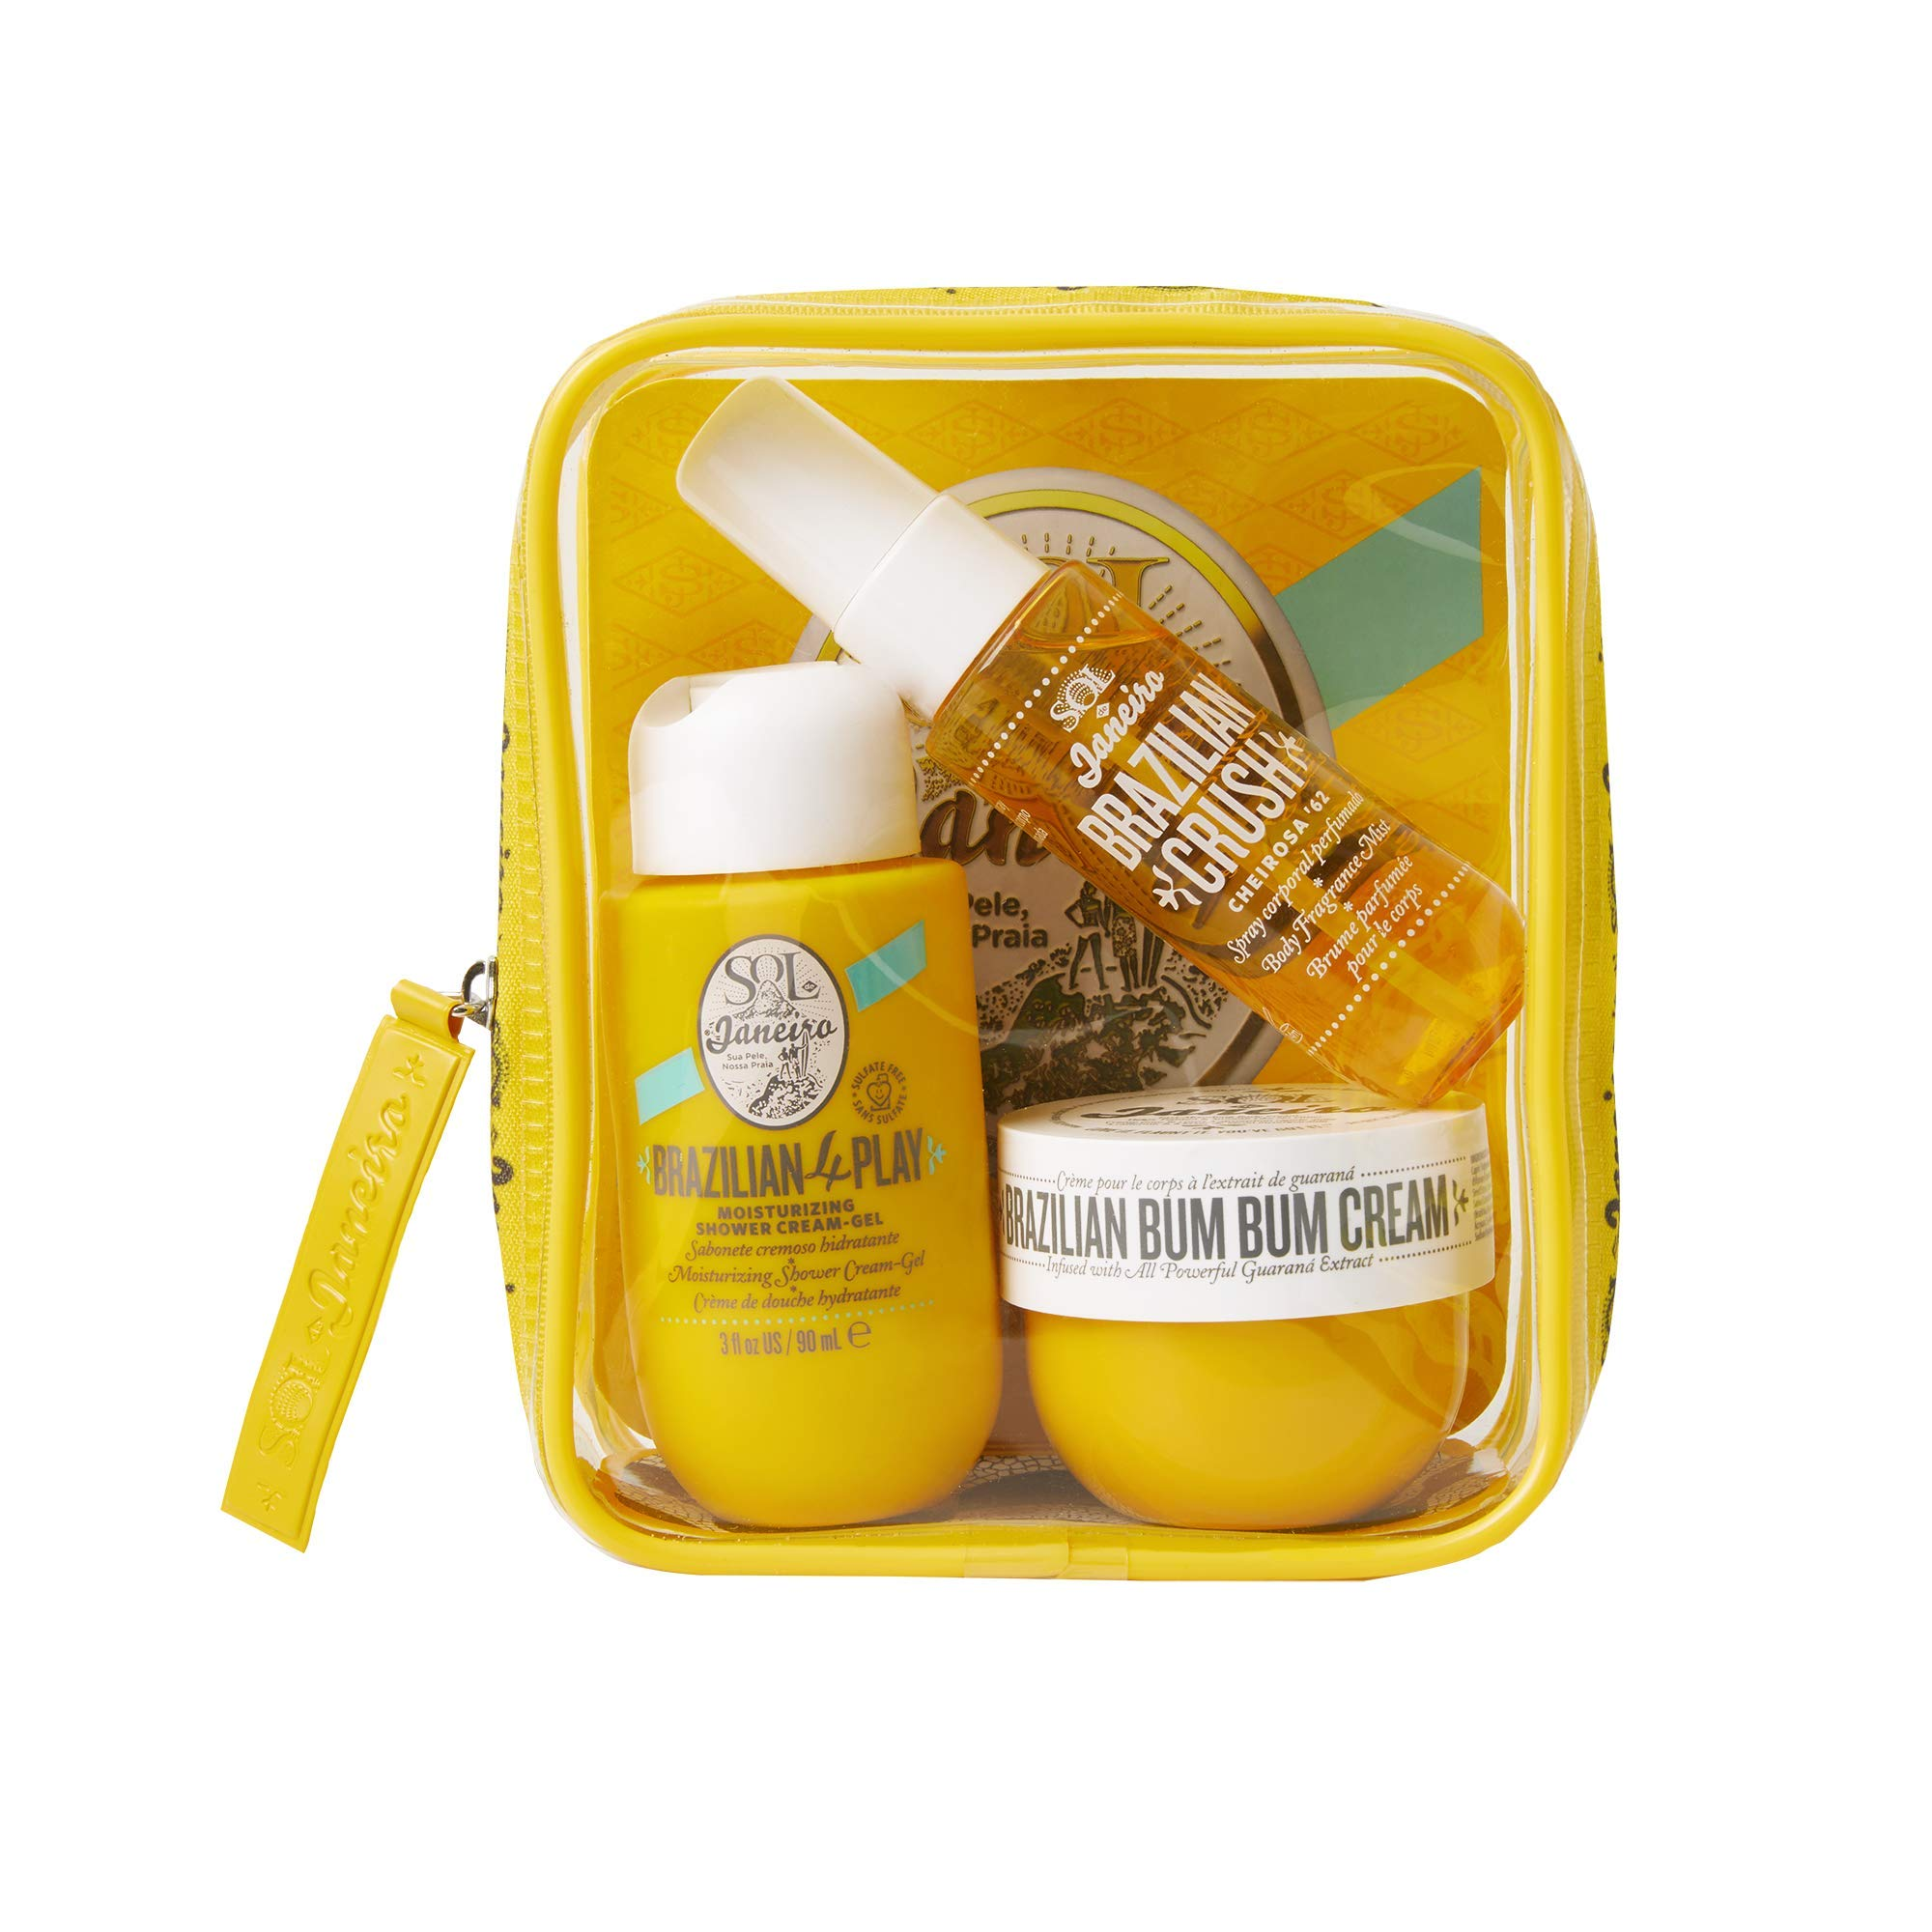 SOL DE JANEIRO Bum Bum Jet Set Body Care Travel Kit